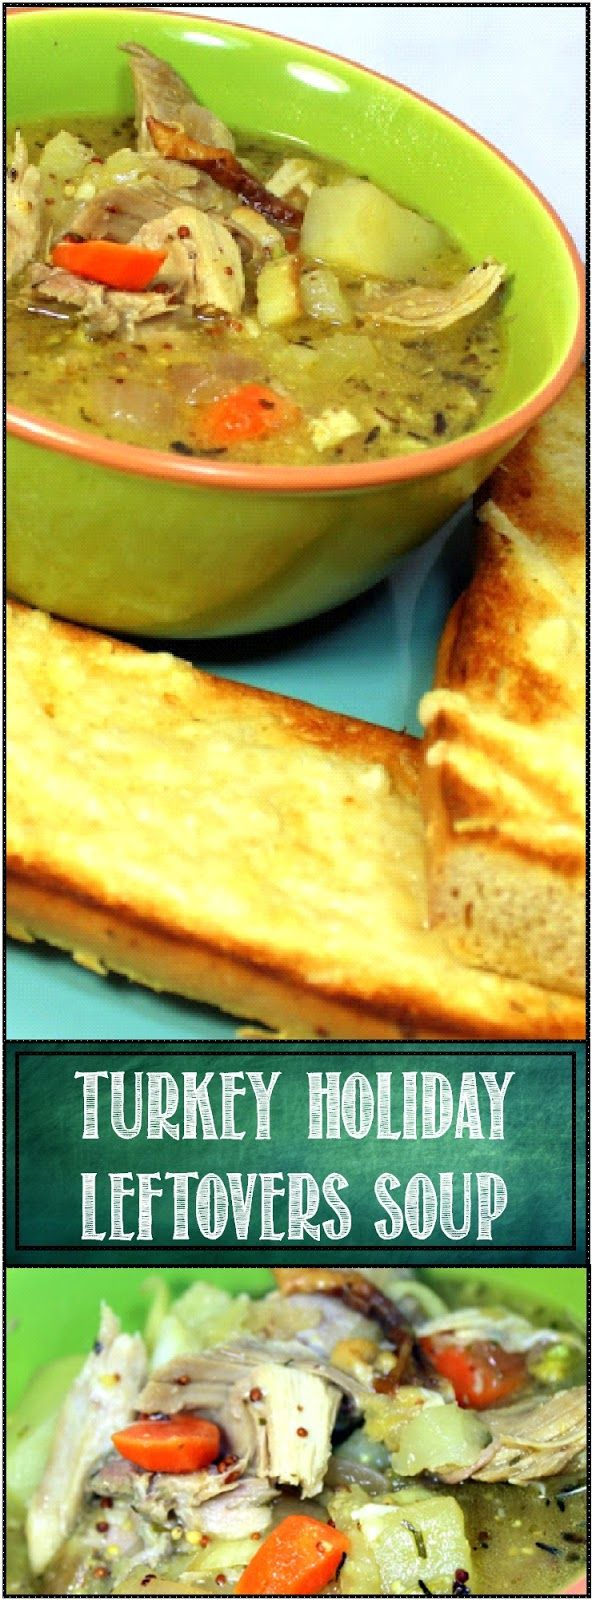 """Turkey """"Holiday Leftovers"""" Soup - 52 Soup Recipes... Works with Chicken as well. A pretty basic way to turn leftovers into something special. Roasted potatoes and vegetables combine with a flavorful (REALLY FLAVORFUL if you have any Turkey Gravy left) Liquid to make a heart warming, Soul warming and just plain WARMING Soup!"""